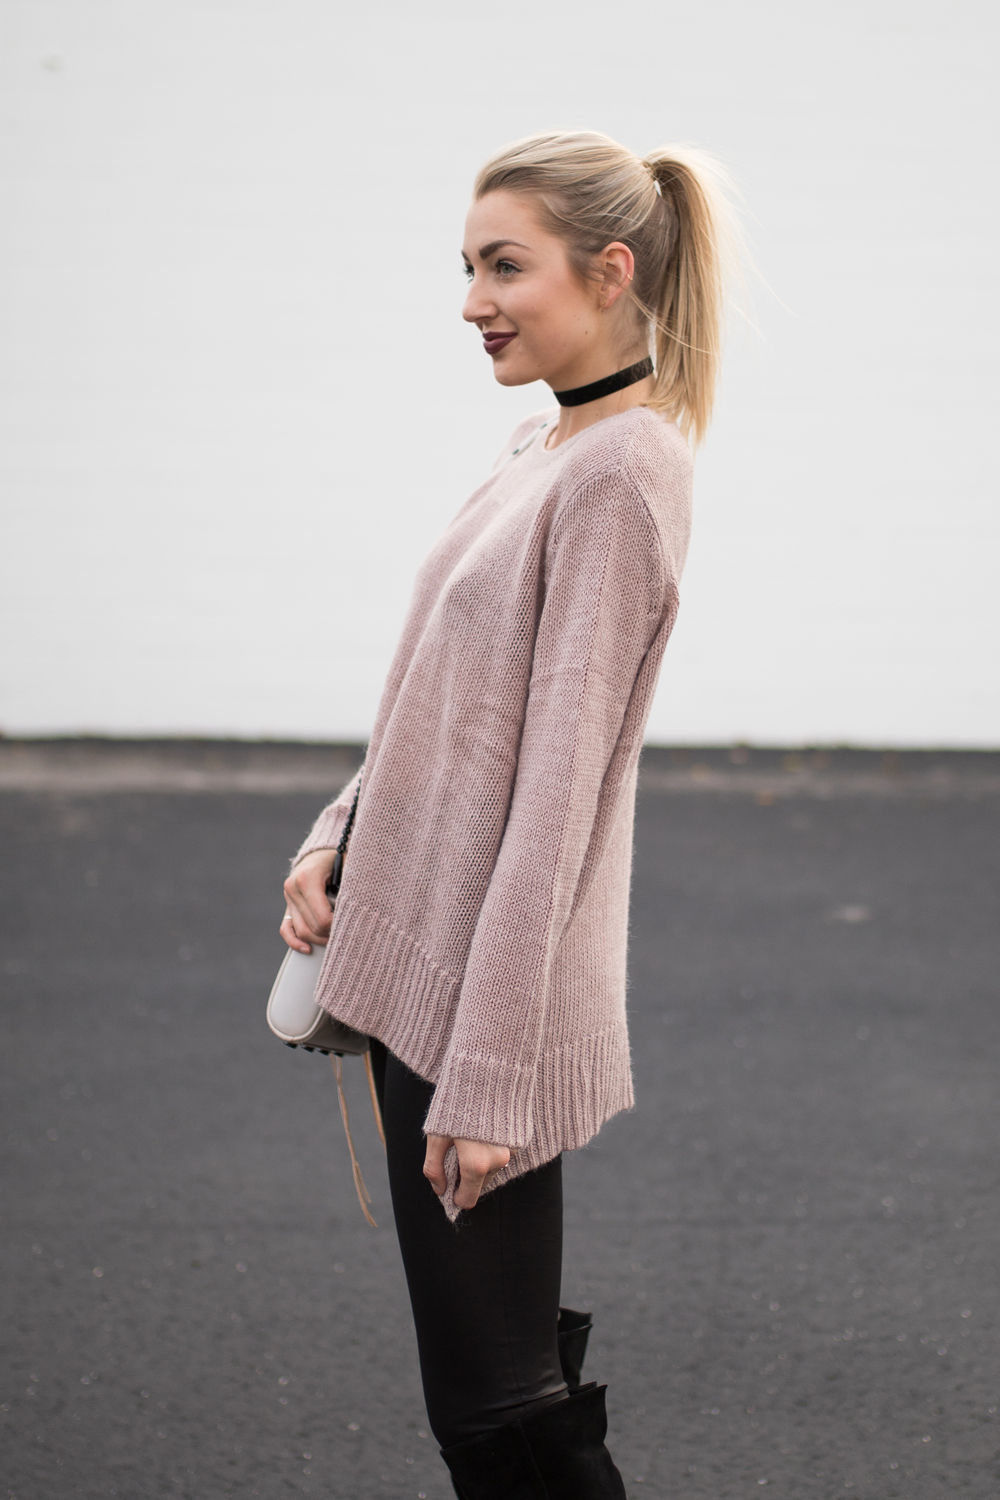 Oversized mauve sweater with a choker